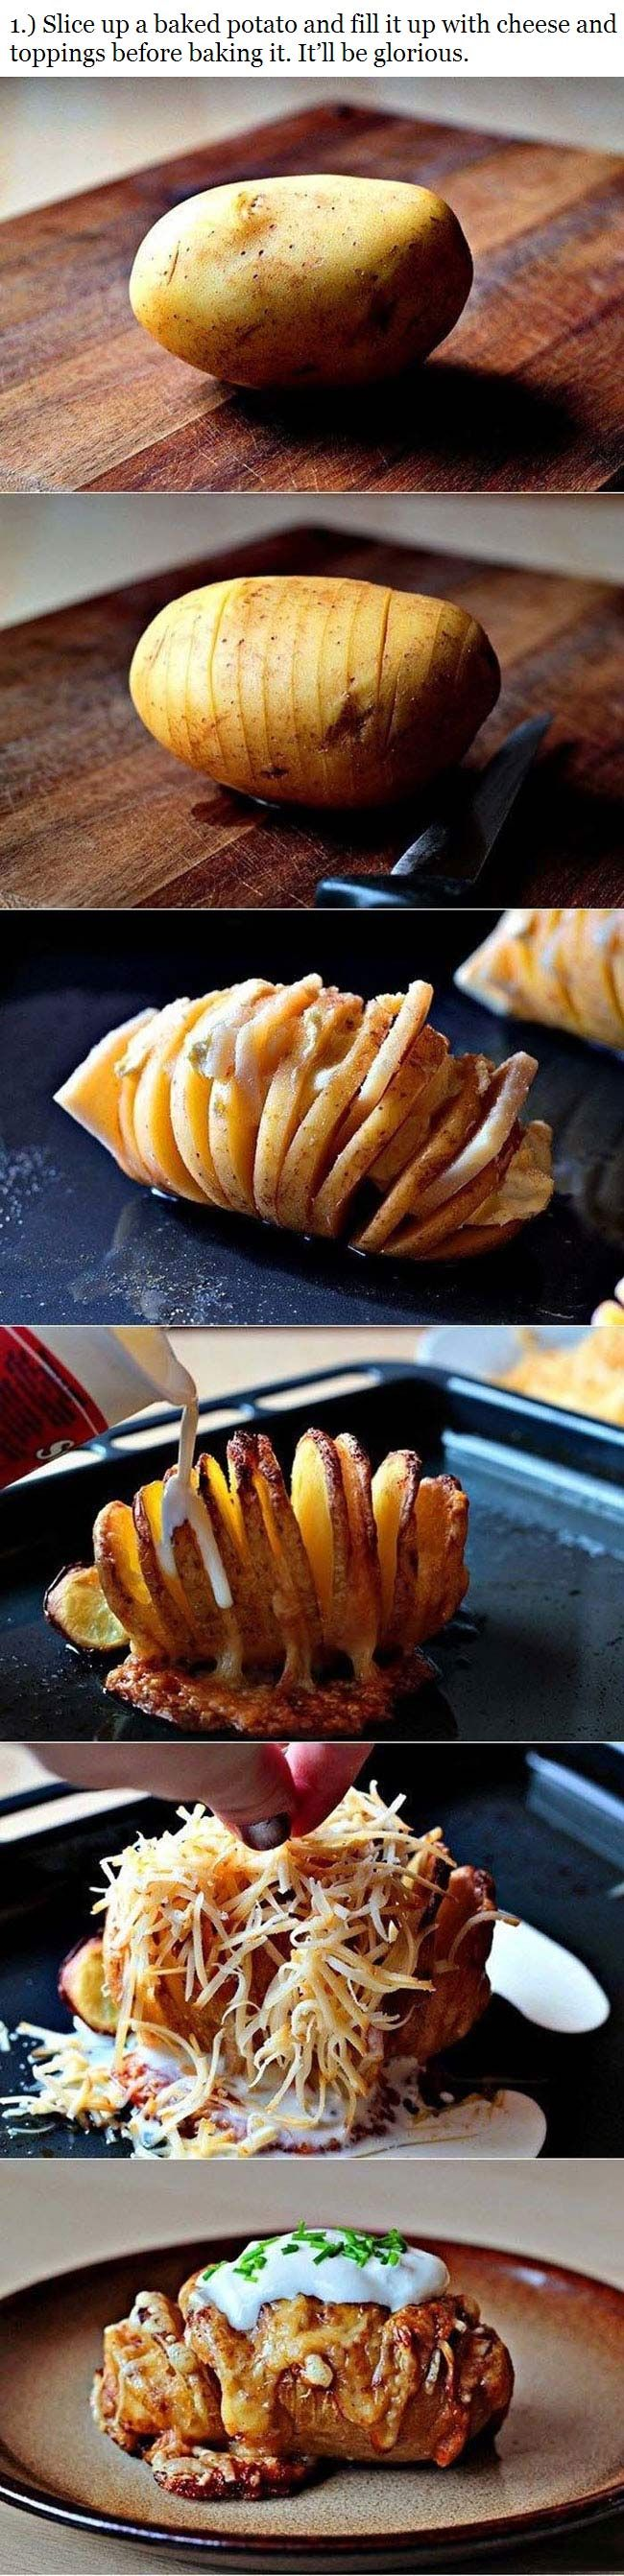 funny-potato-baked-cheese-butter